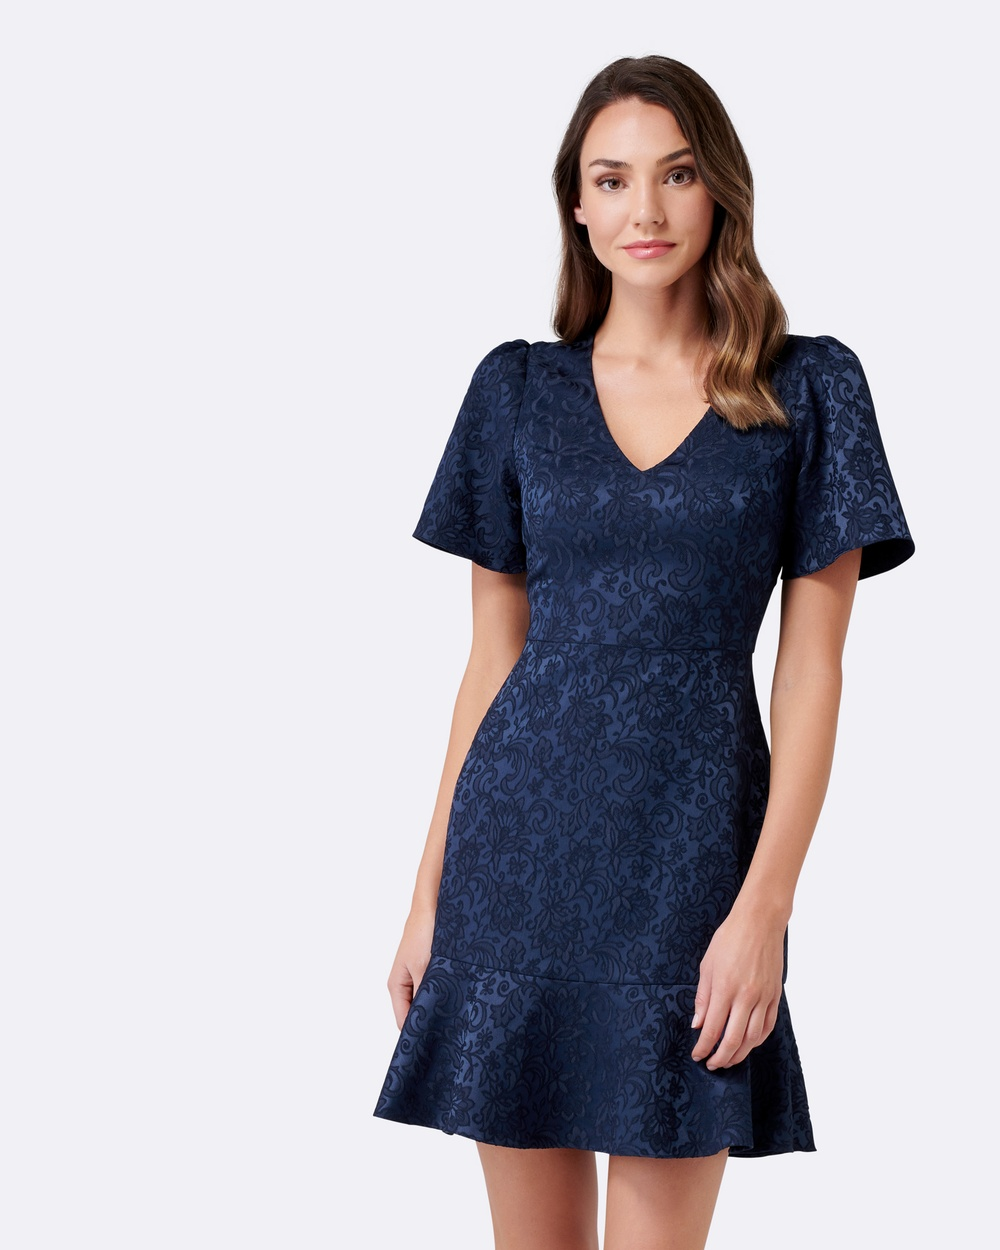 Forever New Skye Jacquard Fit And Flare Dress Dresses Admiral Blue Skye Jacquard Fit And Flare Dress